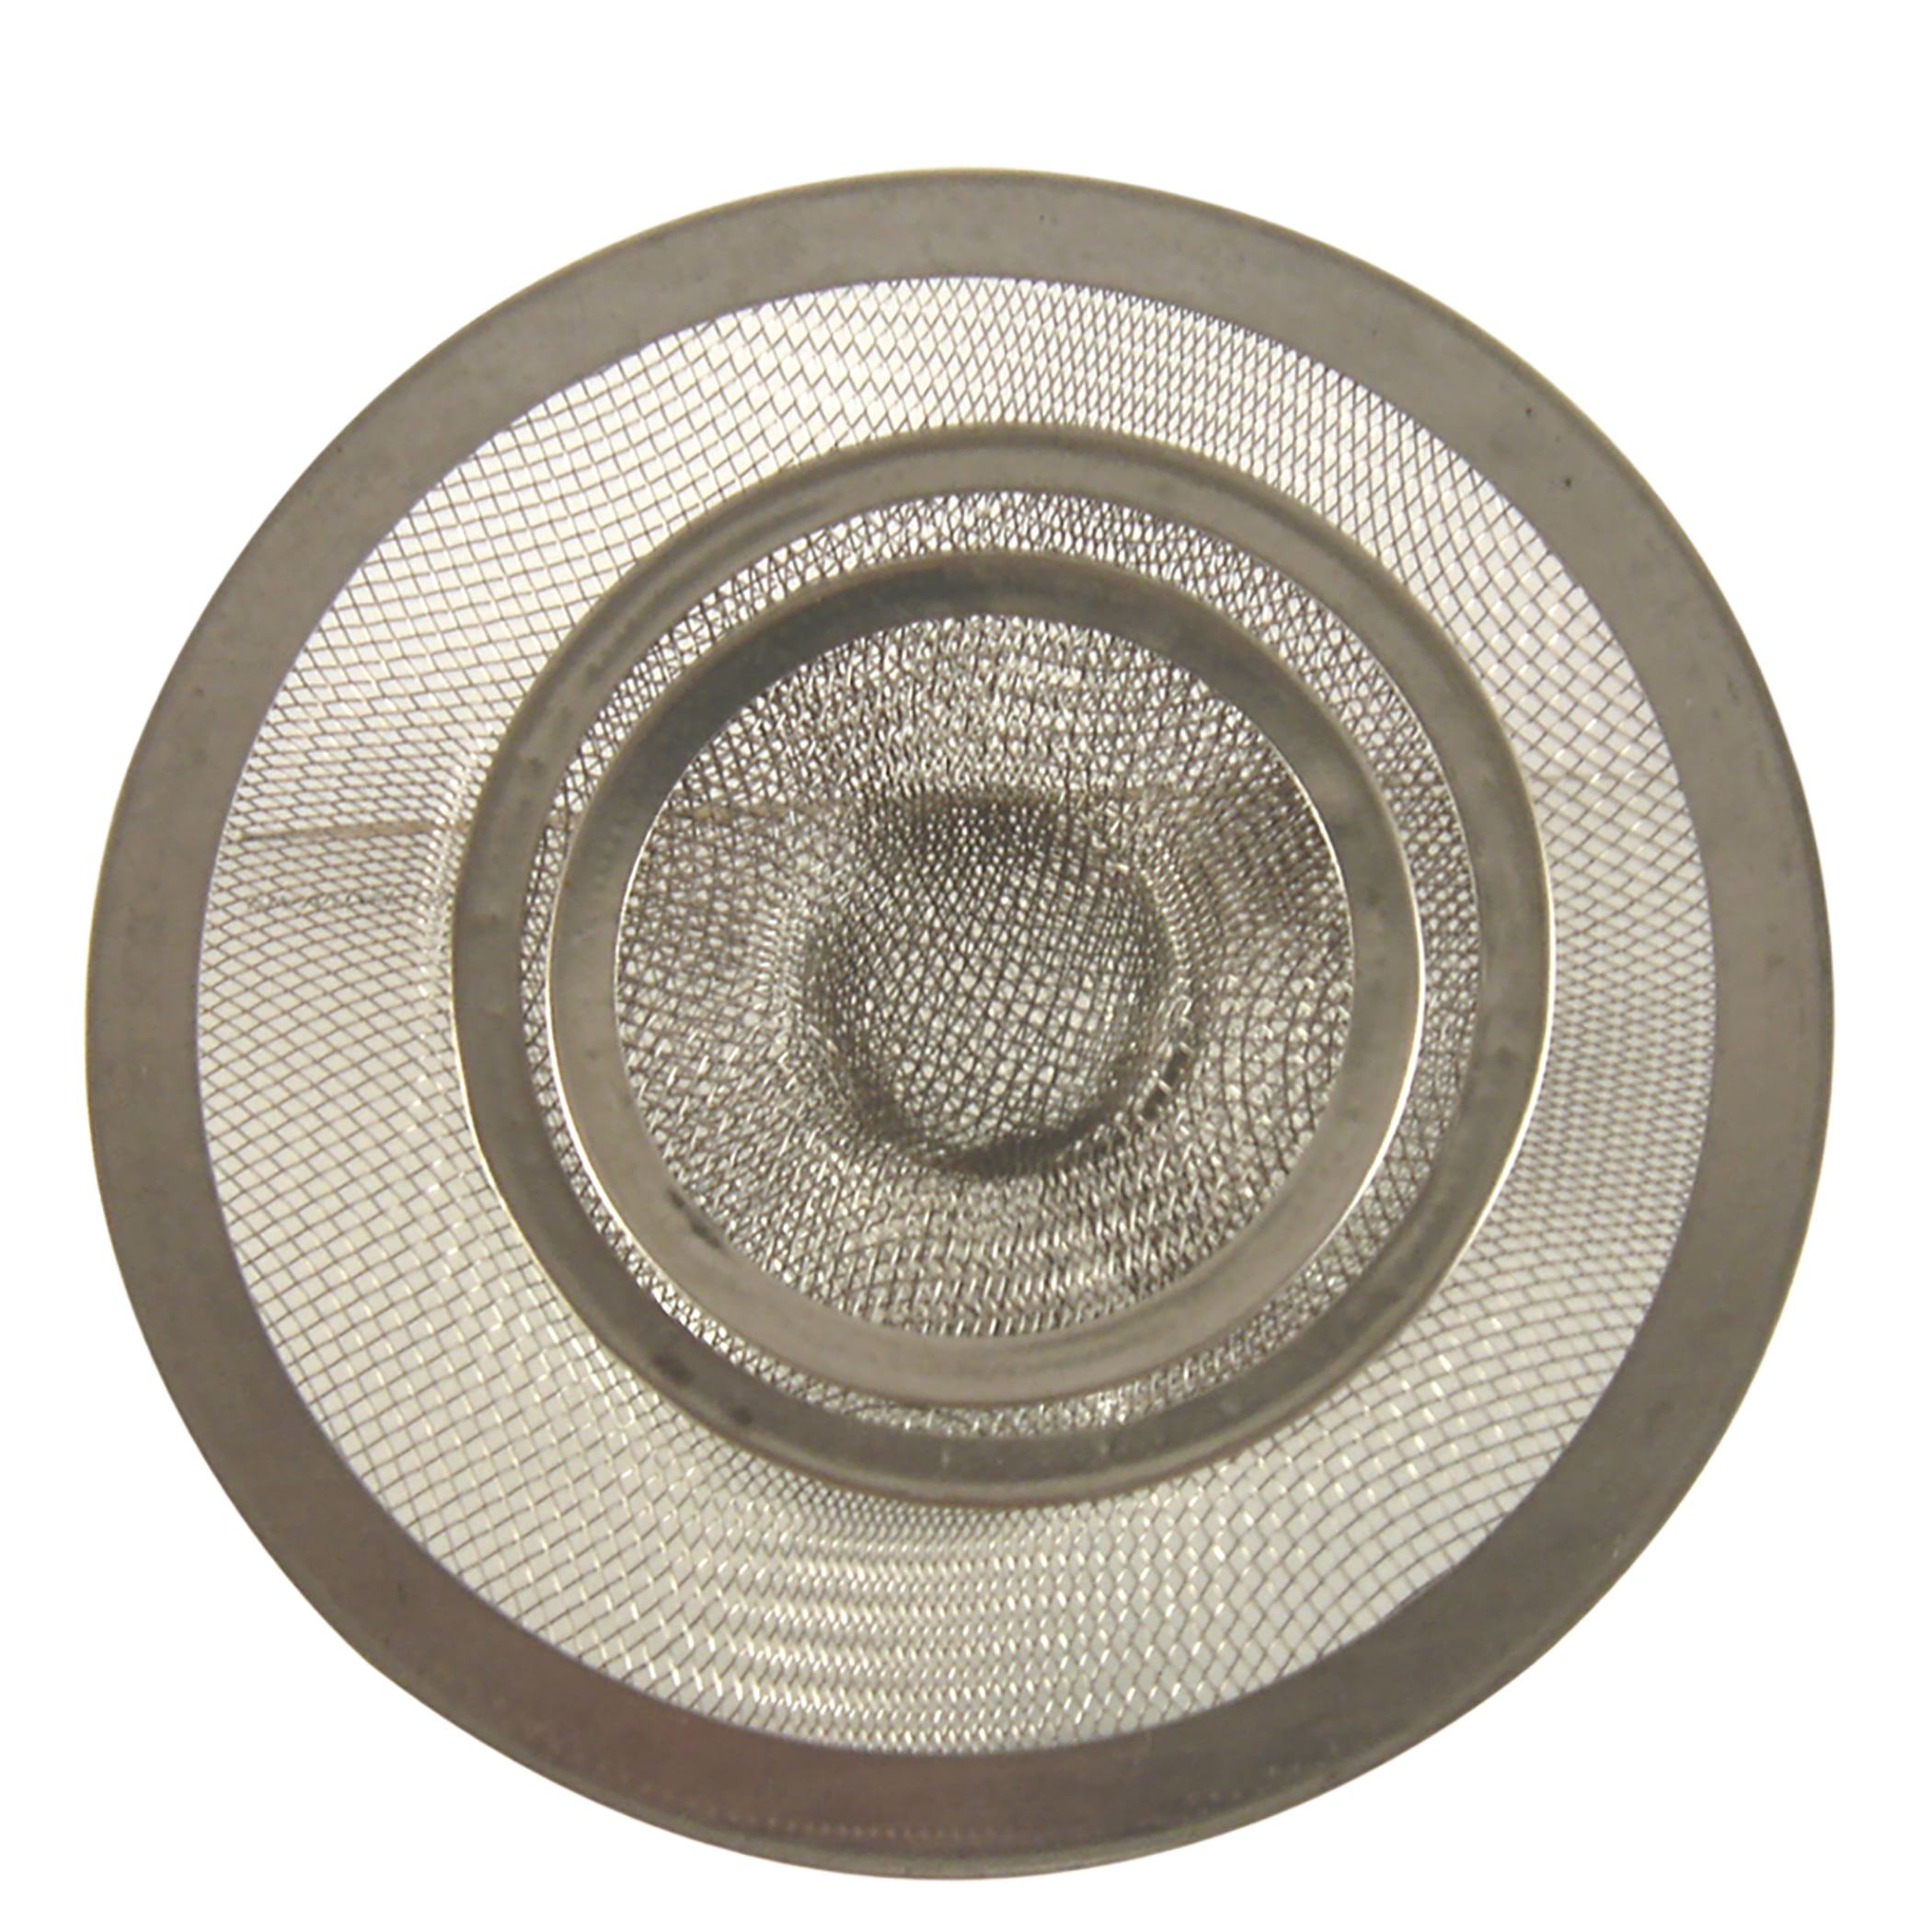 DANCO Mesh Strainer Combo 3-Pack, Stainless Steel (88886)